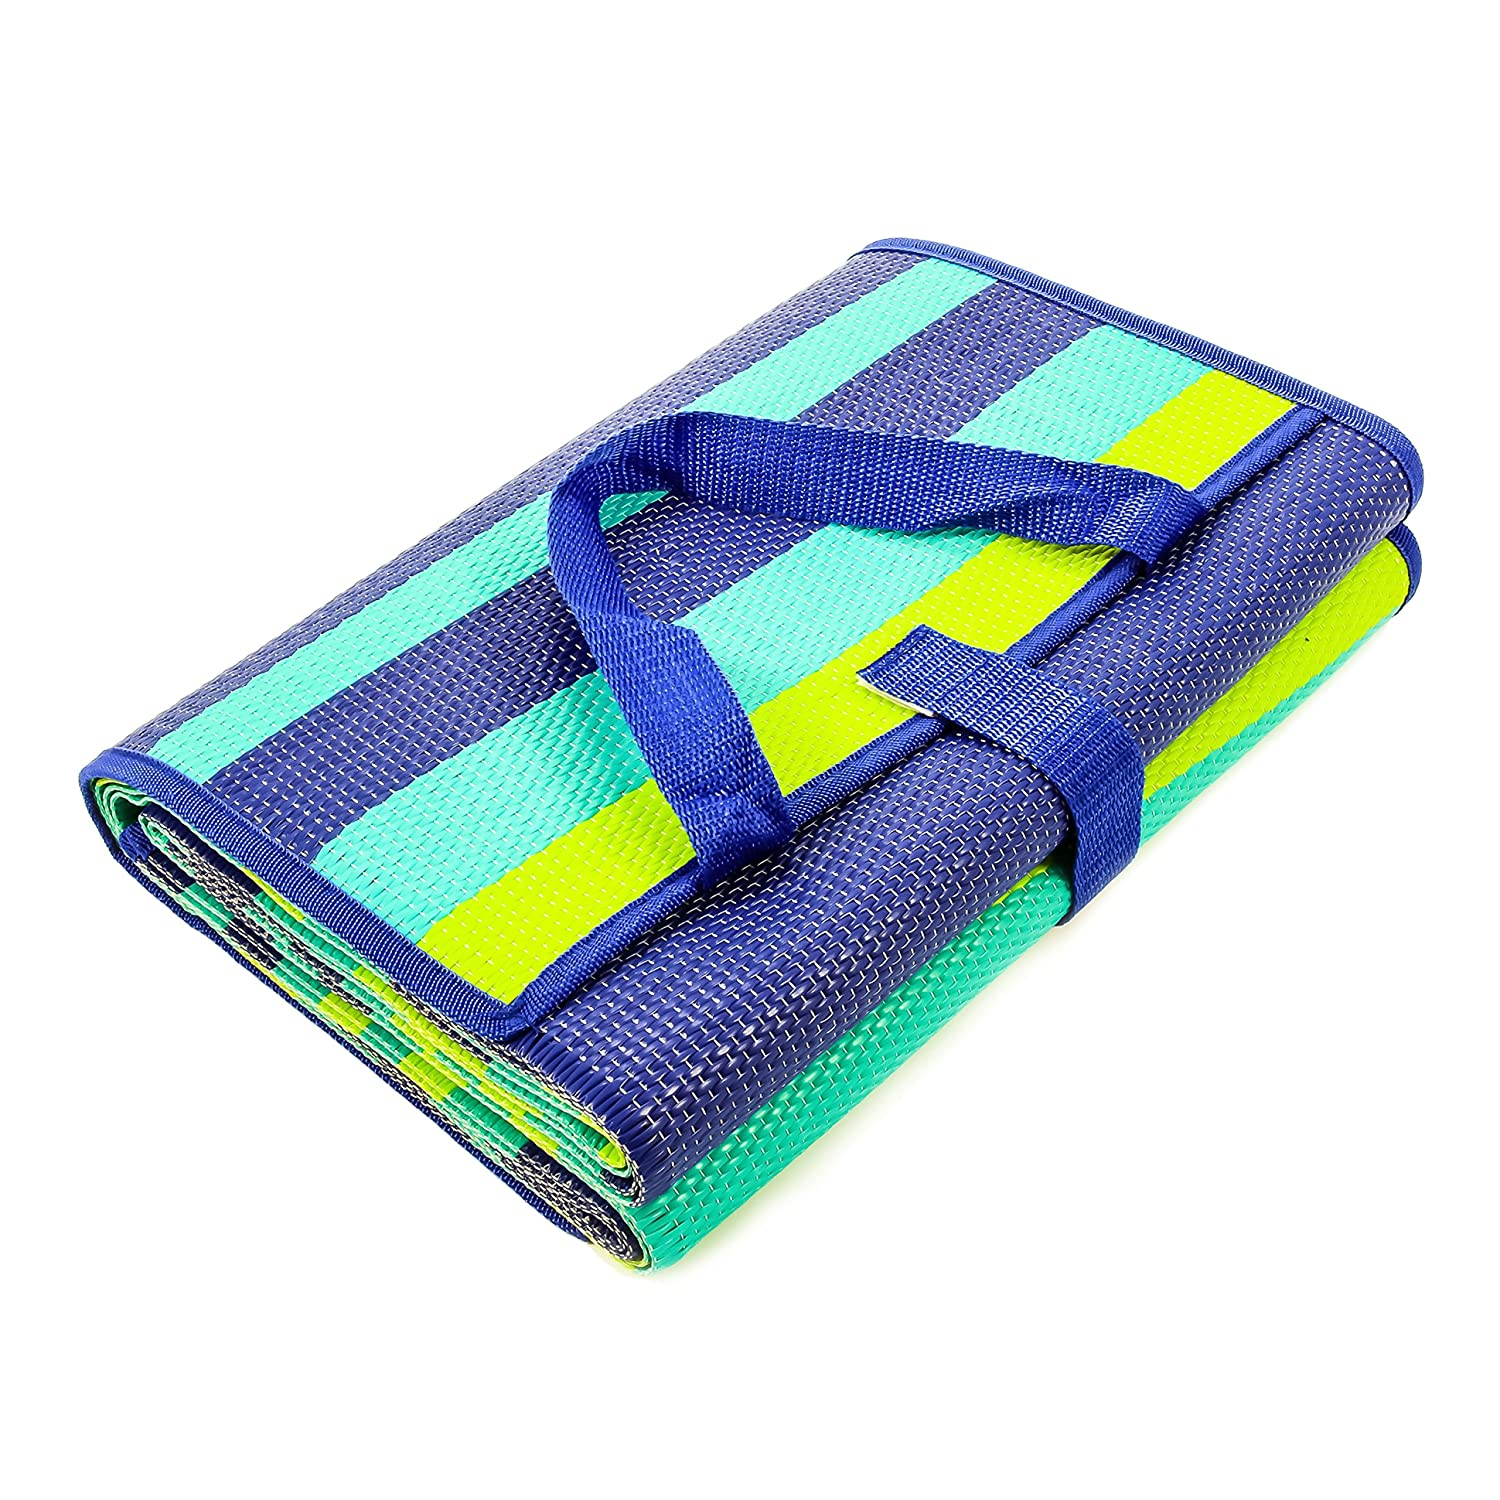 Camco Handy Mat with Strap, Perfect for Picnics, Beaches, RV and Outings, Weather-Proof and Mold/Mildew Resistant (Green/Turquoise - 60' x 78') (42806) Weather-Proof and Mold/Mildew Resistant (Green/Turquoise - 60 x 78) (42806)